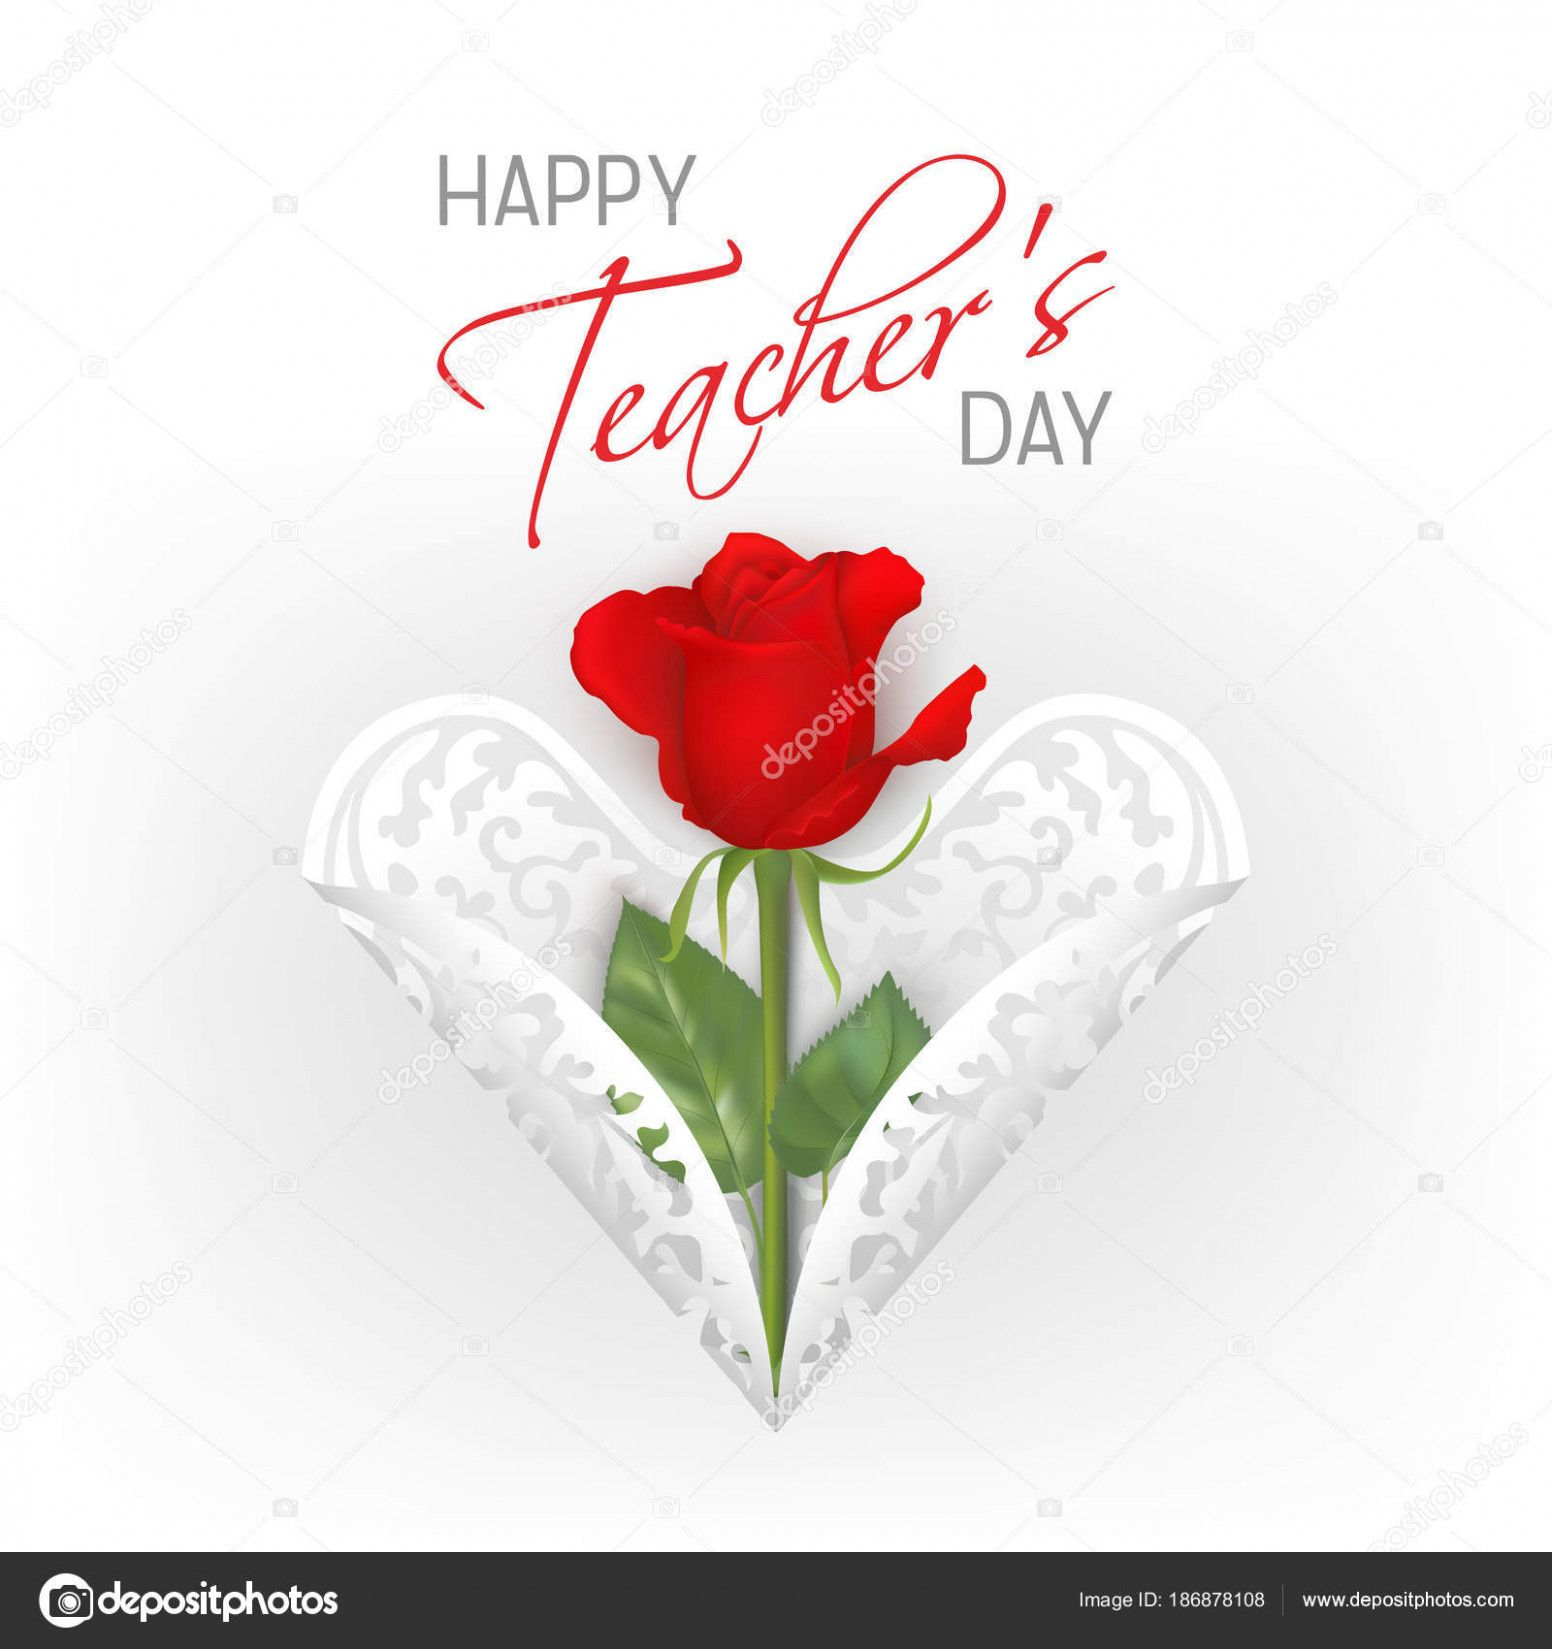 10 Joyful Lecturers Day Stunning Card Our Agents Adviser Us And